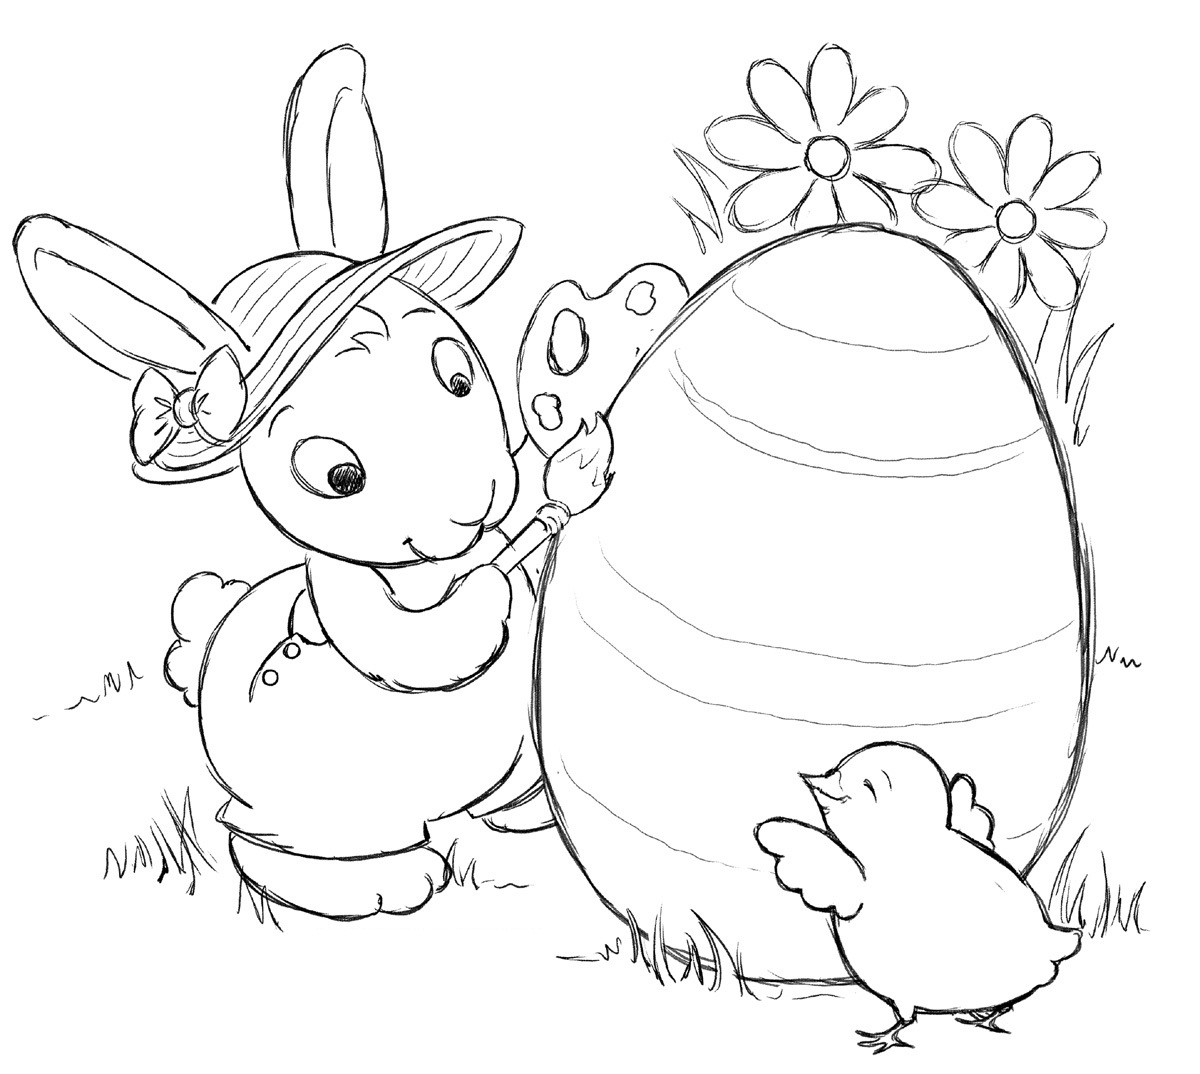 Coloring Book Pages Easter  Free Printable Easter Bunny Coloring Pages For Kids